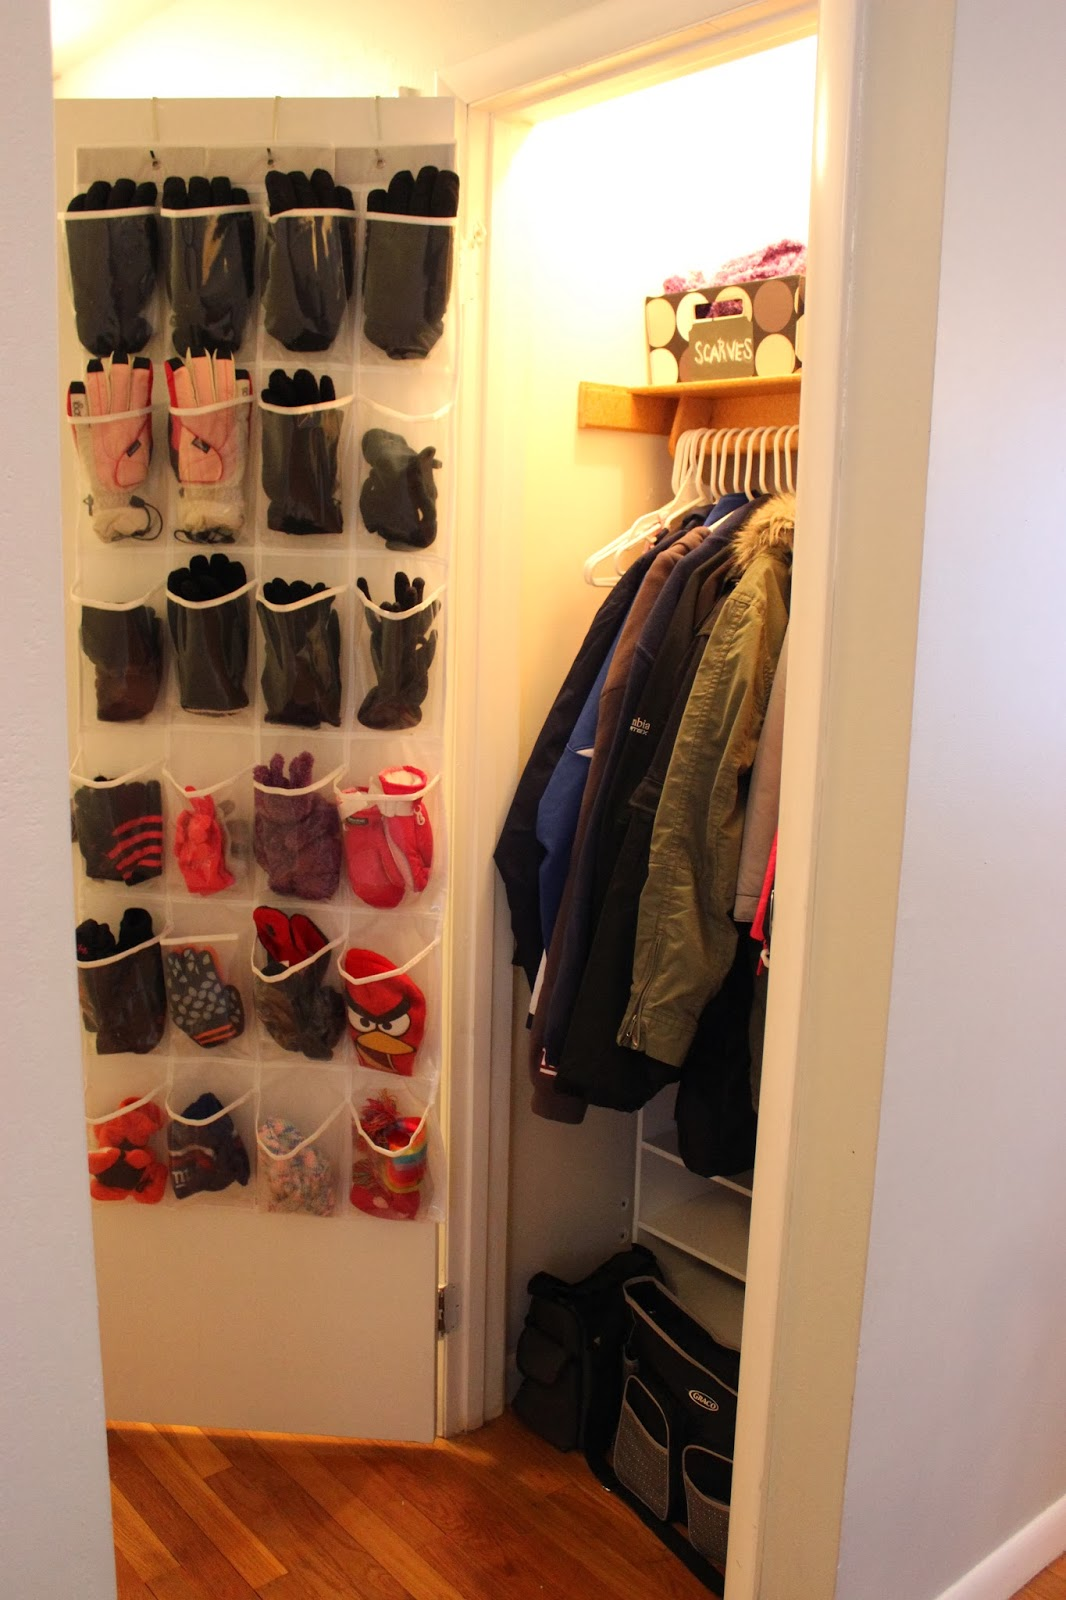 In Our Coat Closet Was An Over The Door 24 Pocket Shoe Organizer Its Where We Keep Most Often Used Gloves And Hats Prior To Buying This